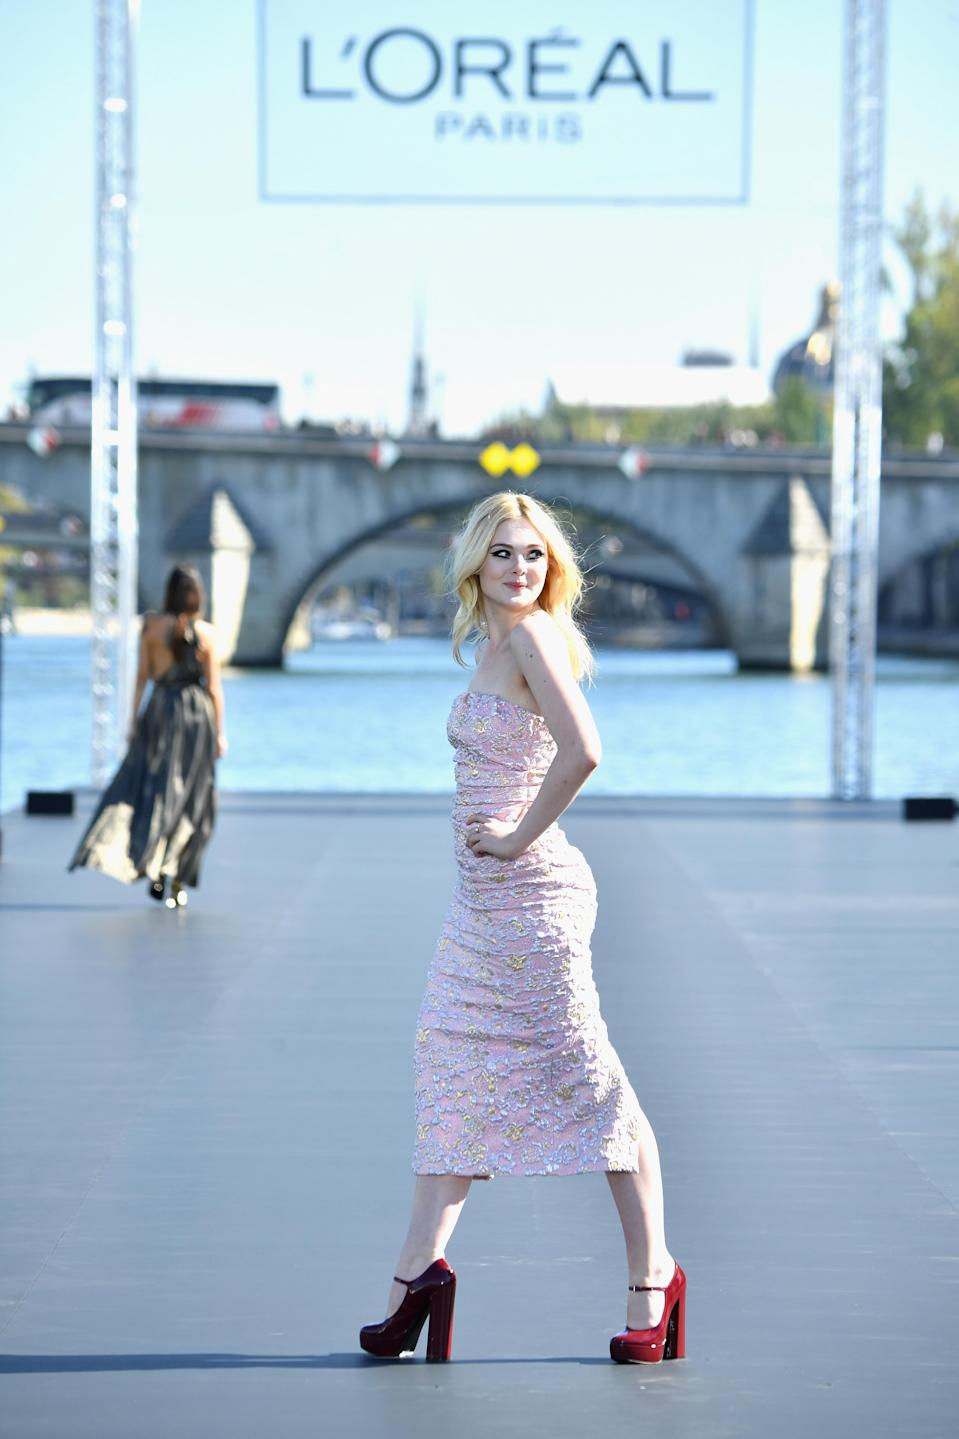 Elle Fanning on the L'Oreal catwalk at Paris Fashion Week. [Credit: L'Oreal]